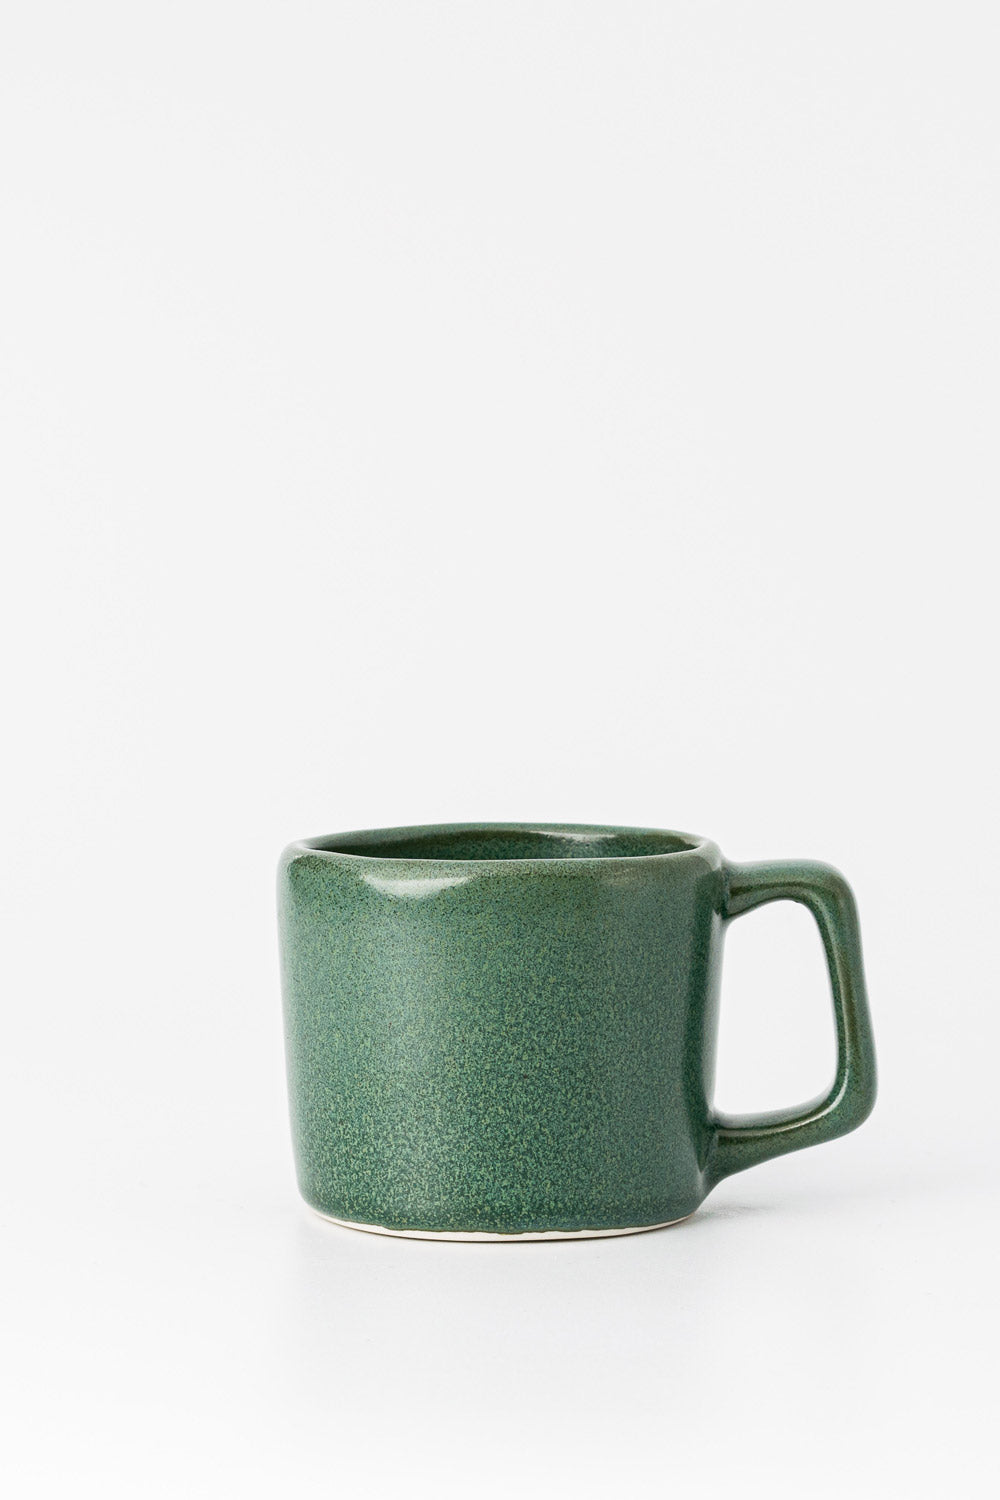 Mug Small in Fern